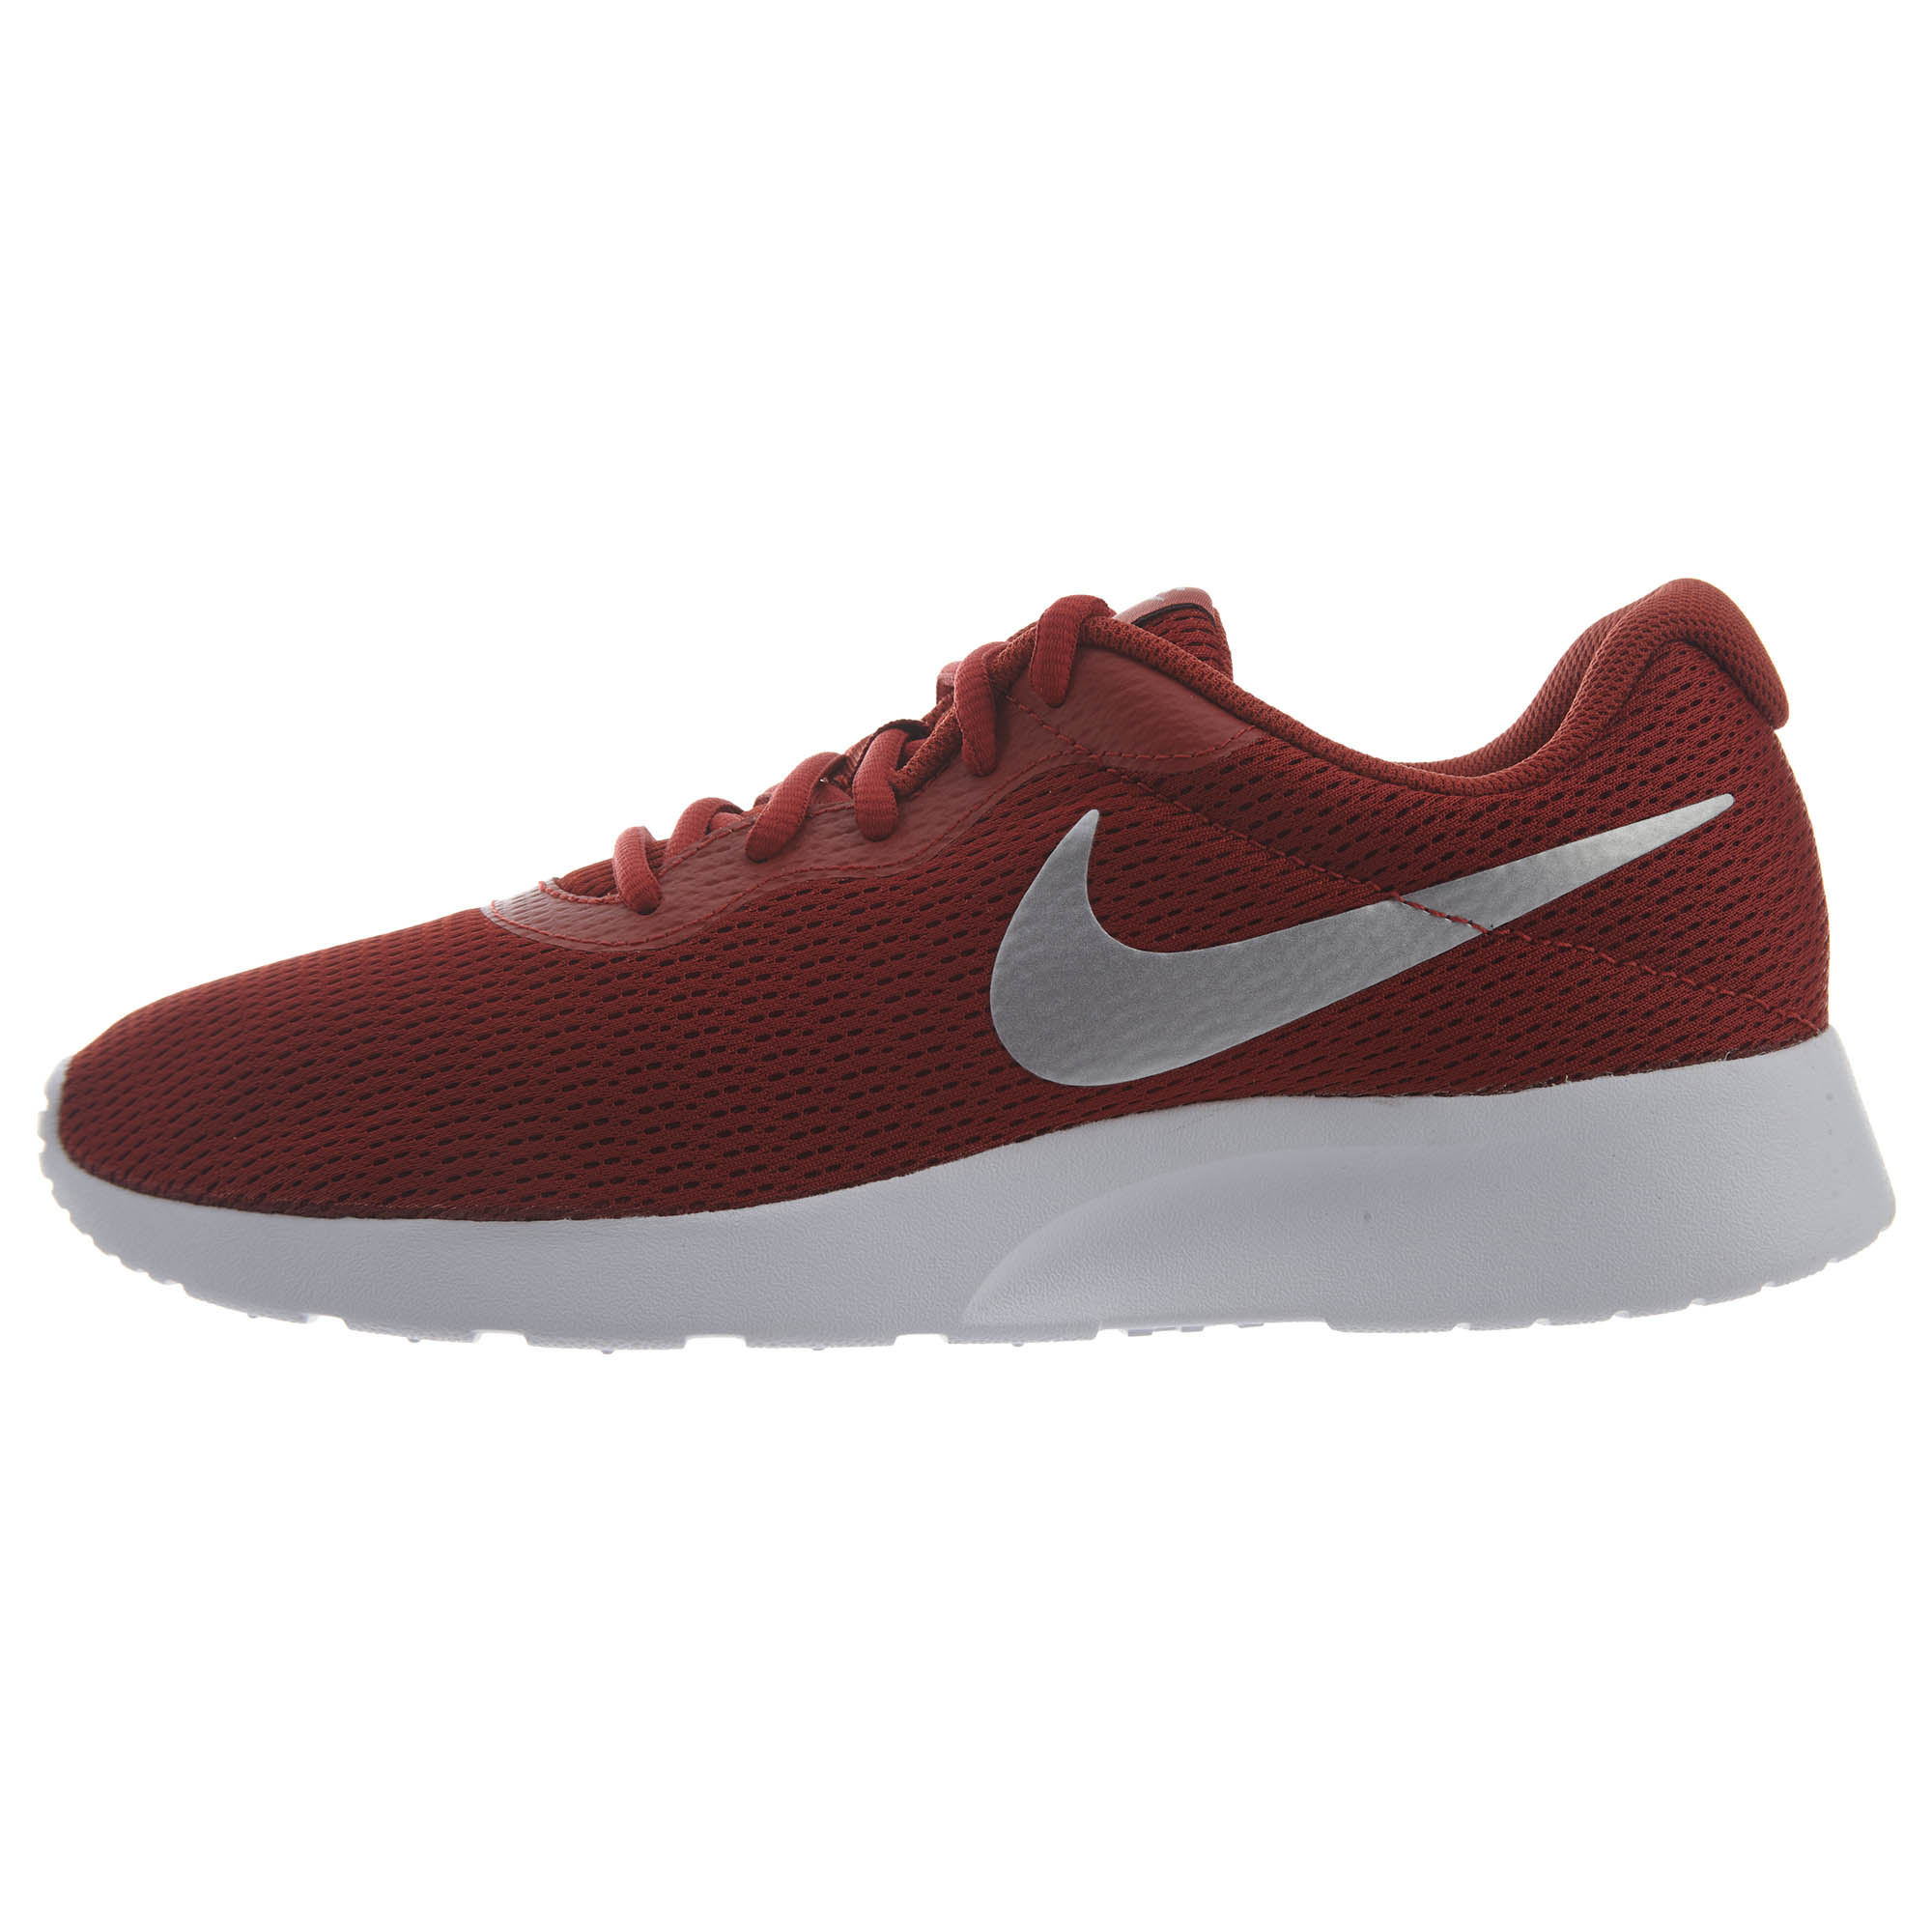 sports shoes e11f0 58181 Details about Nike Mens Tanjun Shoes AQ7154-601